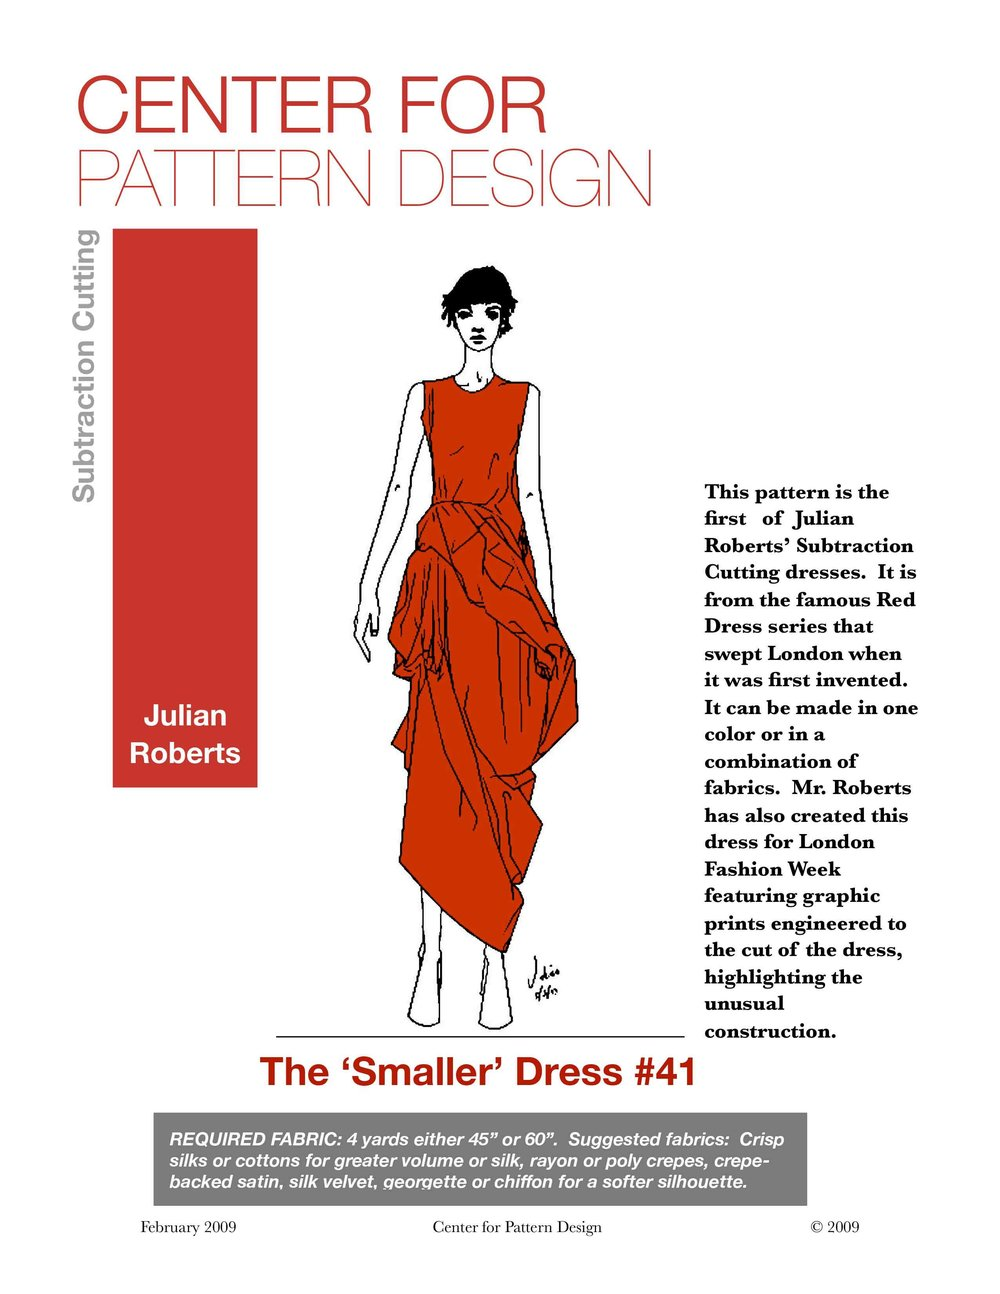 SMALLER DRESS #41 - PATTERN INSTRUCTIONSPDF PATTERNLEARN MORE ABOUT JULIAN:FREE CUTTING BOOK DOWNLOAD